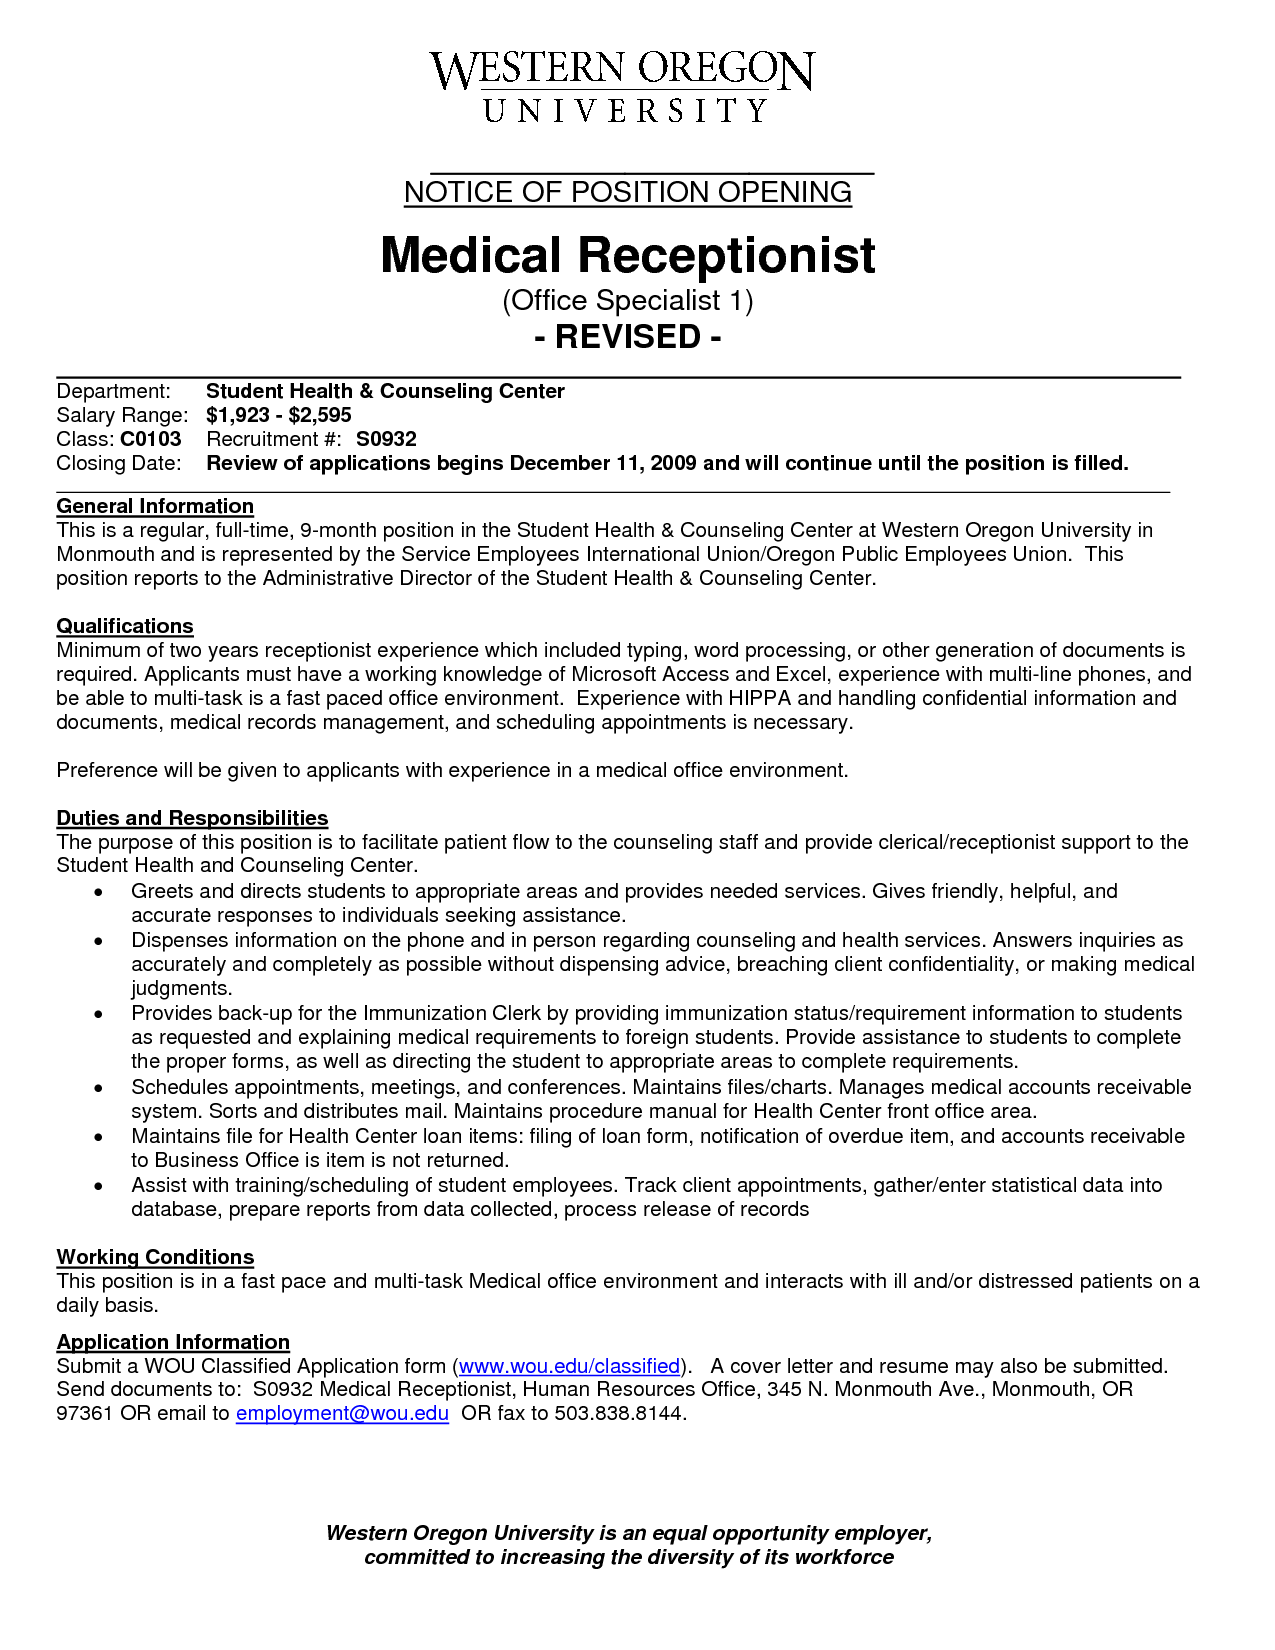 Resume Sample Resume Receptionist Job medical receptionist resume with no experience httpwww resumecareer info